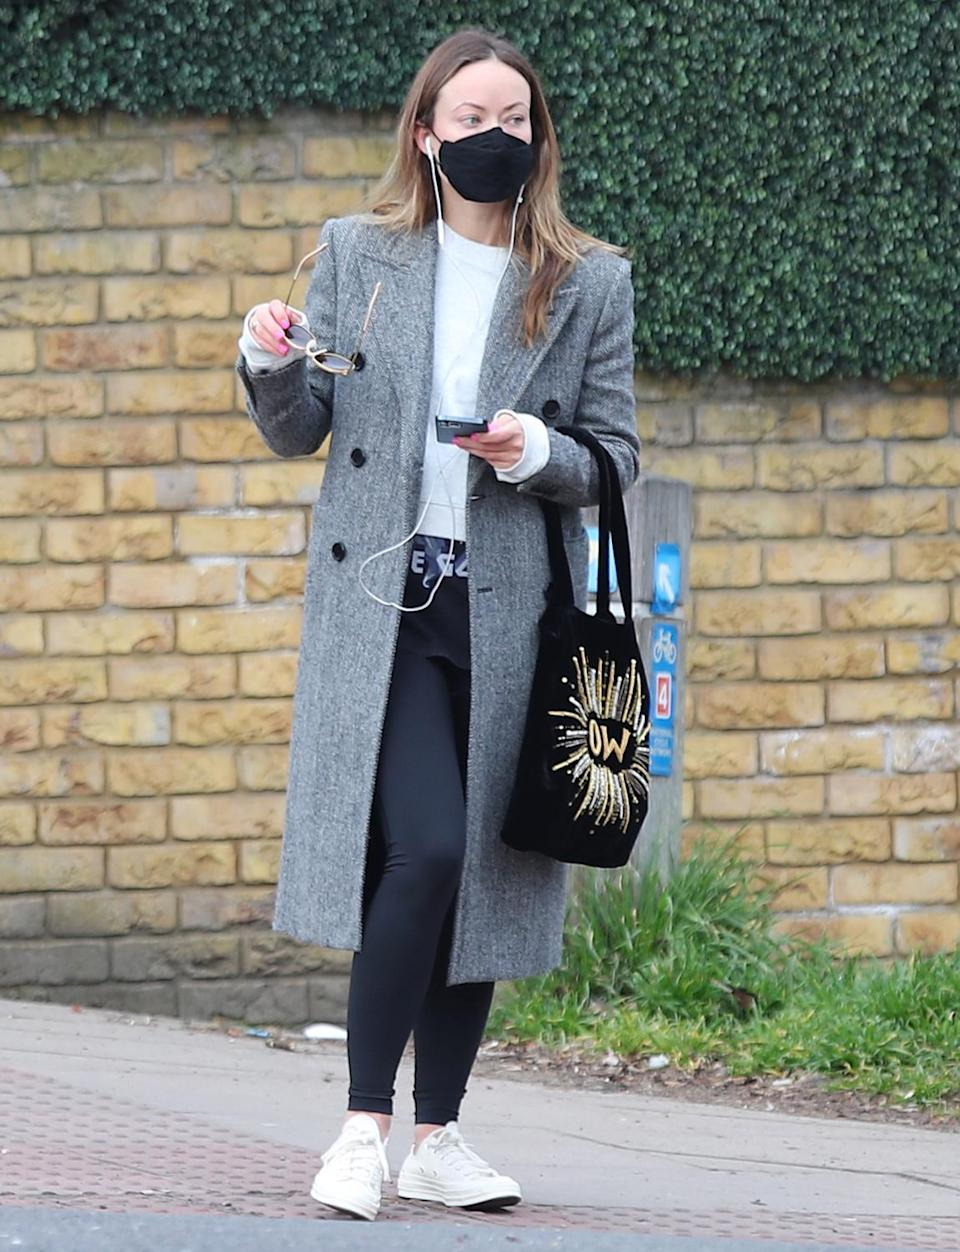 <p>Olivia Wilde is plugged into her phone as she steps out Wednesday morning to grab coffee in London.</p>